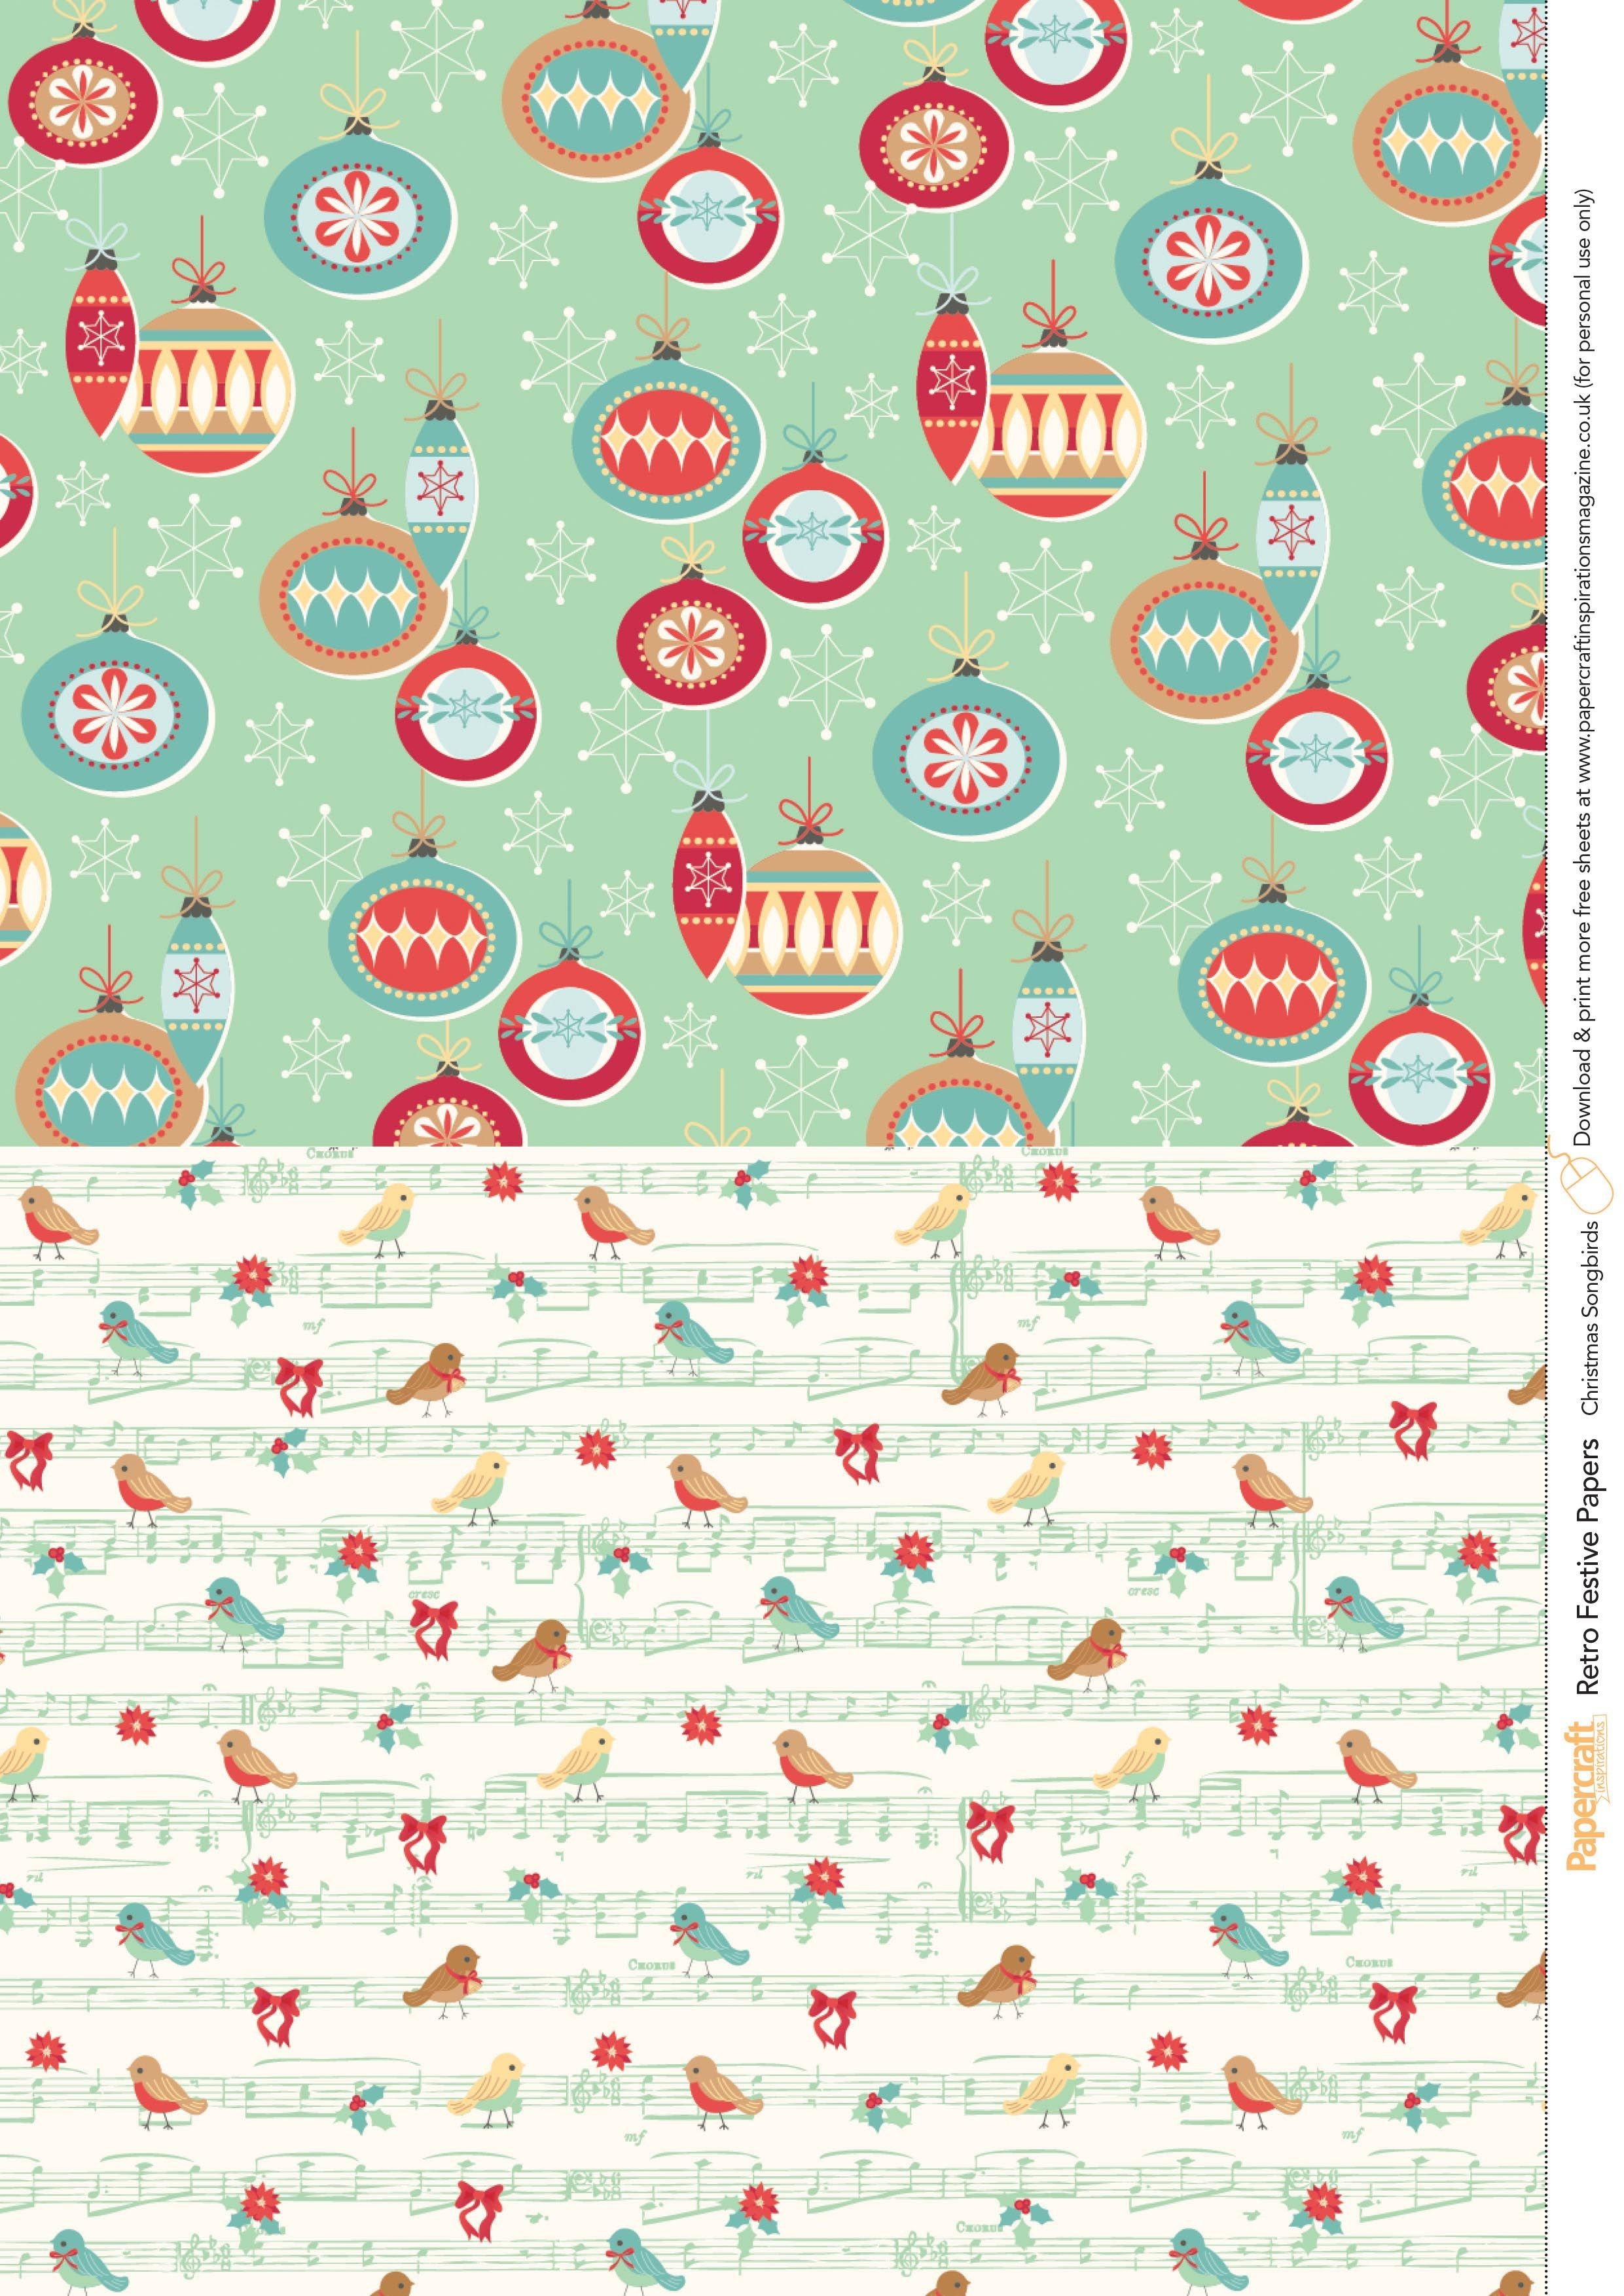 Retro Festive Free Printables From Papercraft Inspirations 145 - Free Printable Scrapbook Paper Christmas